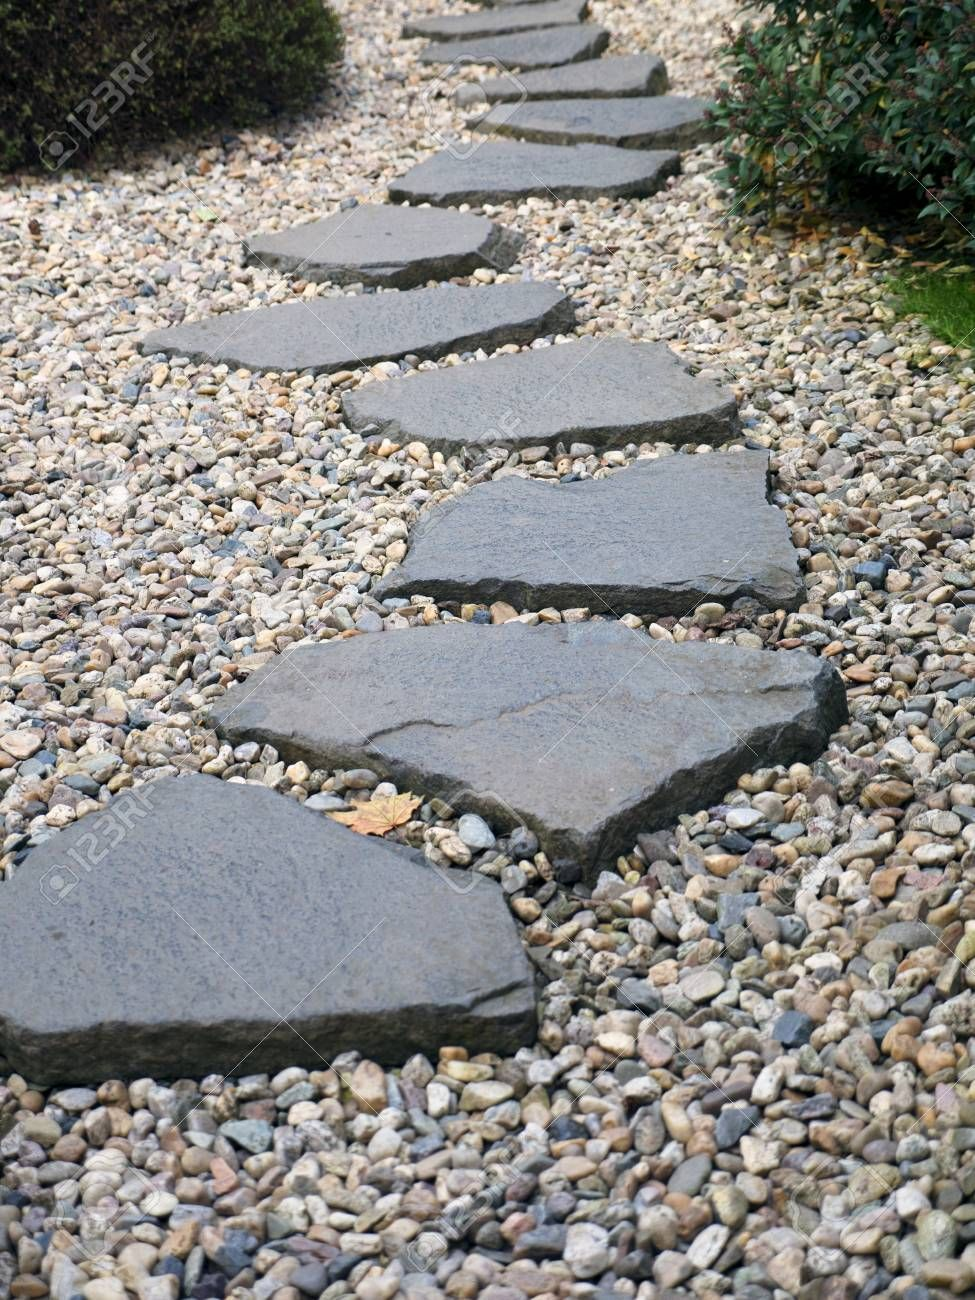 Path of plated stones on the gravel bed in Japanes